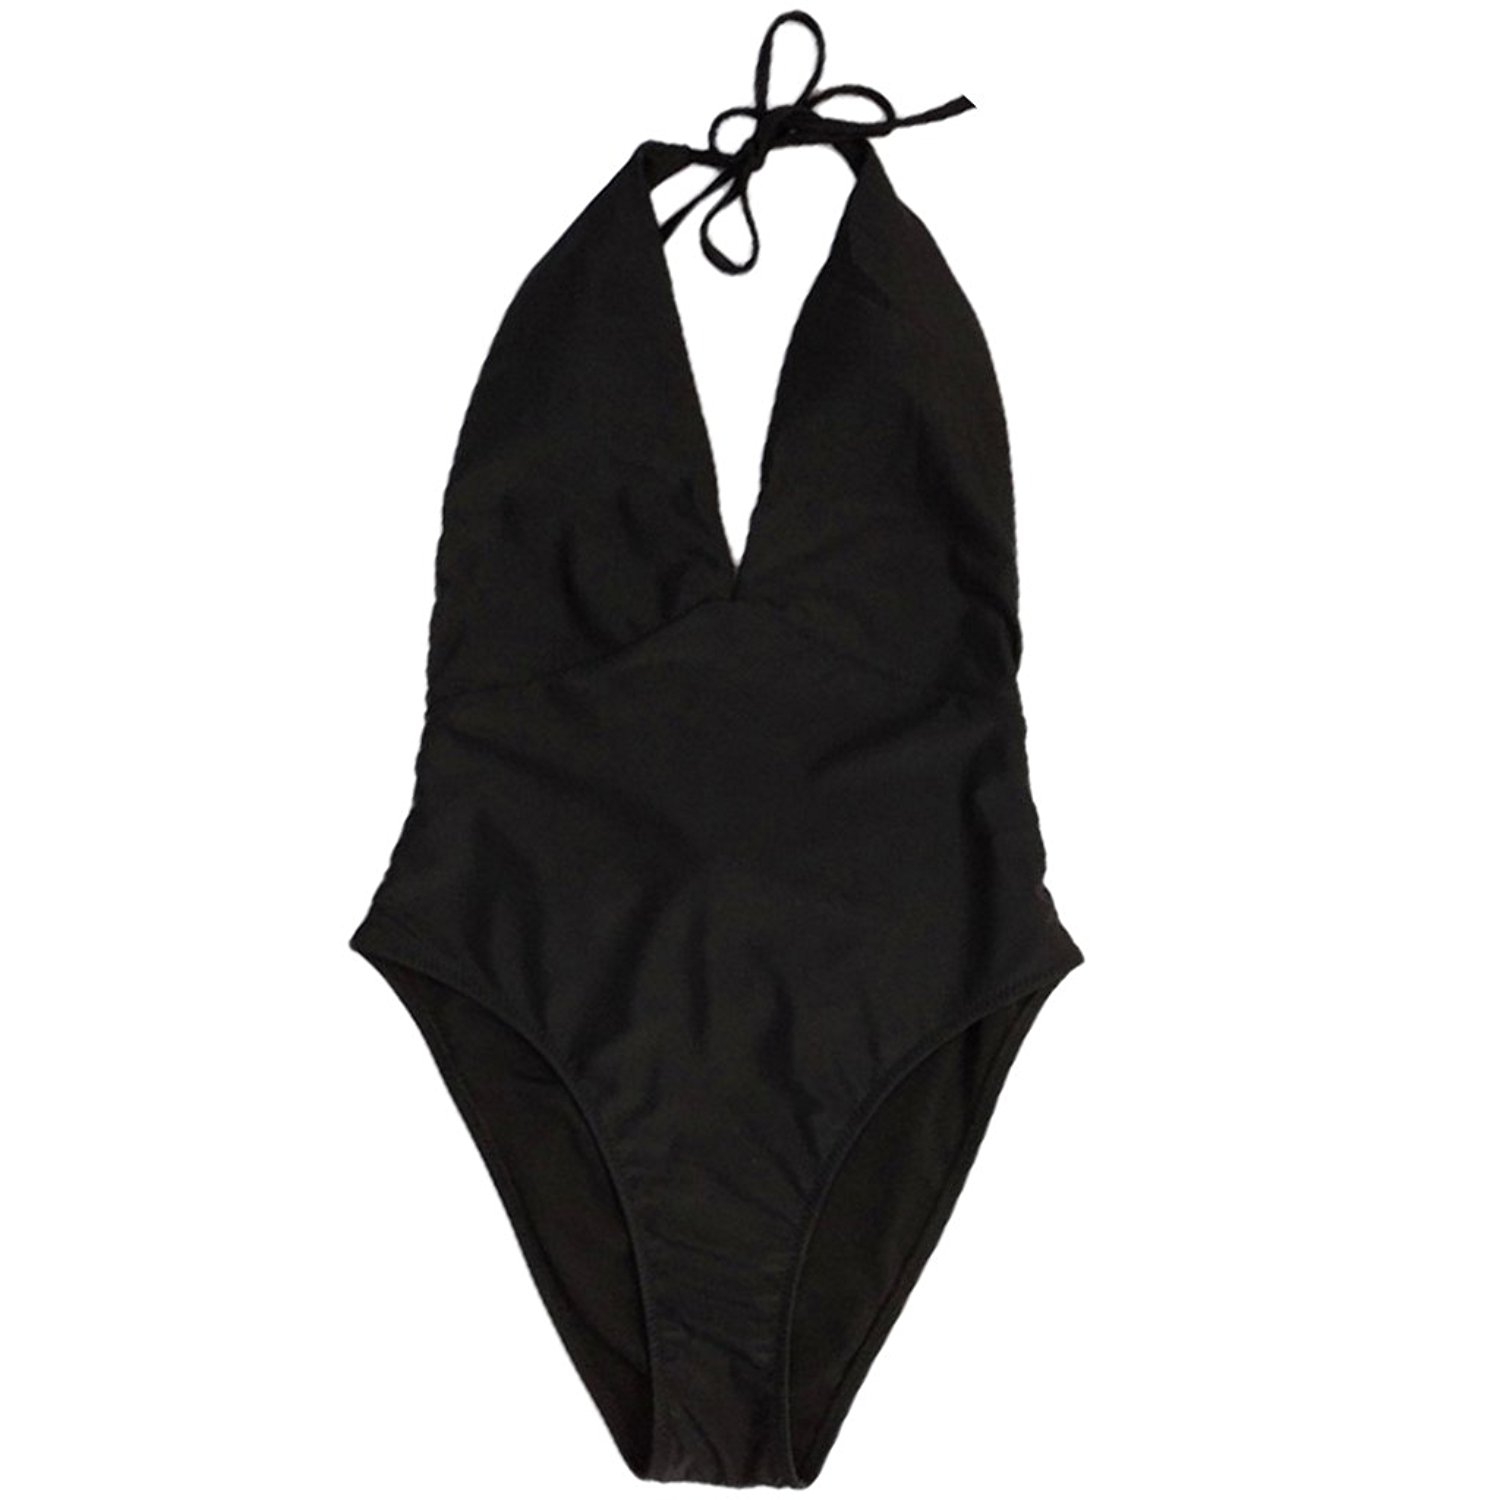 b8951955c28bc Get Quotations · Redriver 2018 New One Piece Sexy Swimsuit Bandage Plus  Size Swimwear Low Bust Swimsuit Women's Suit